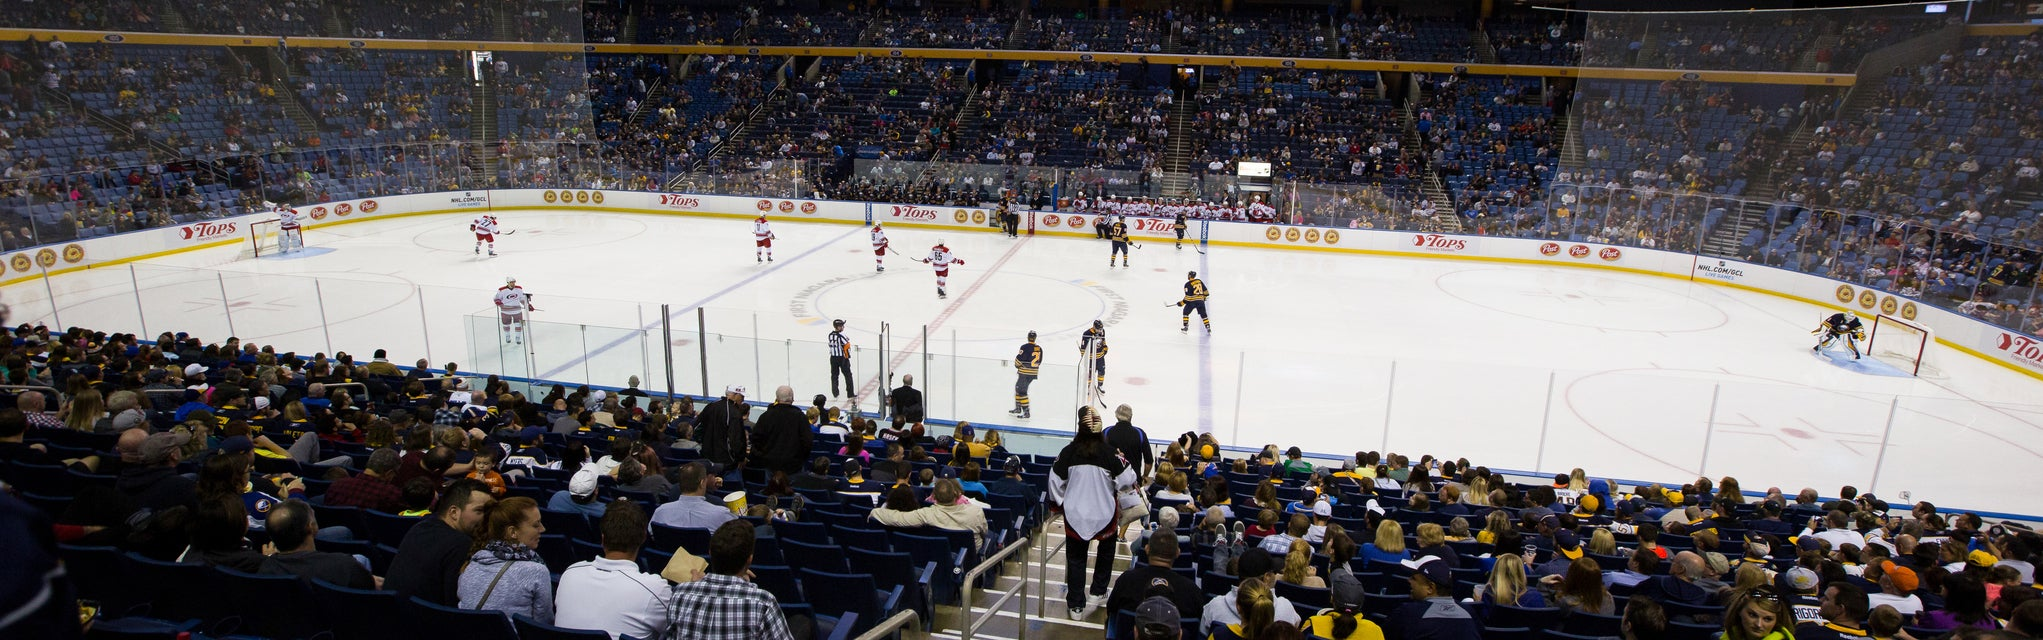 Seat view from Level Preferred